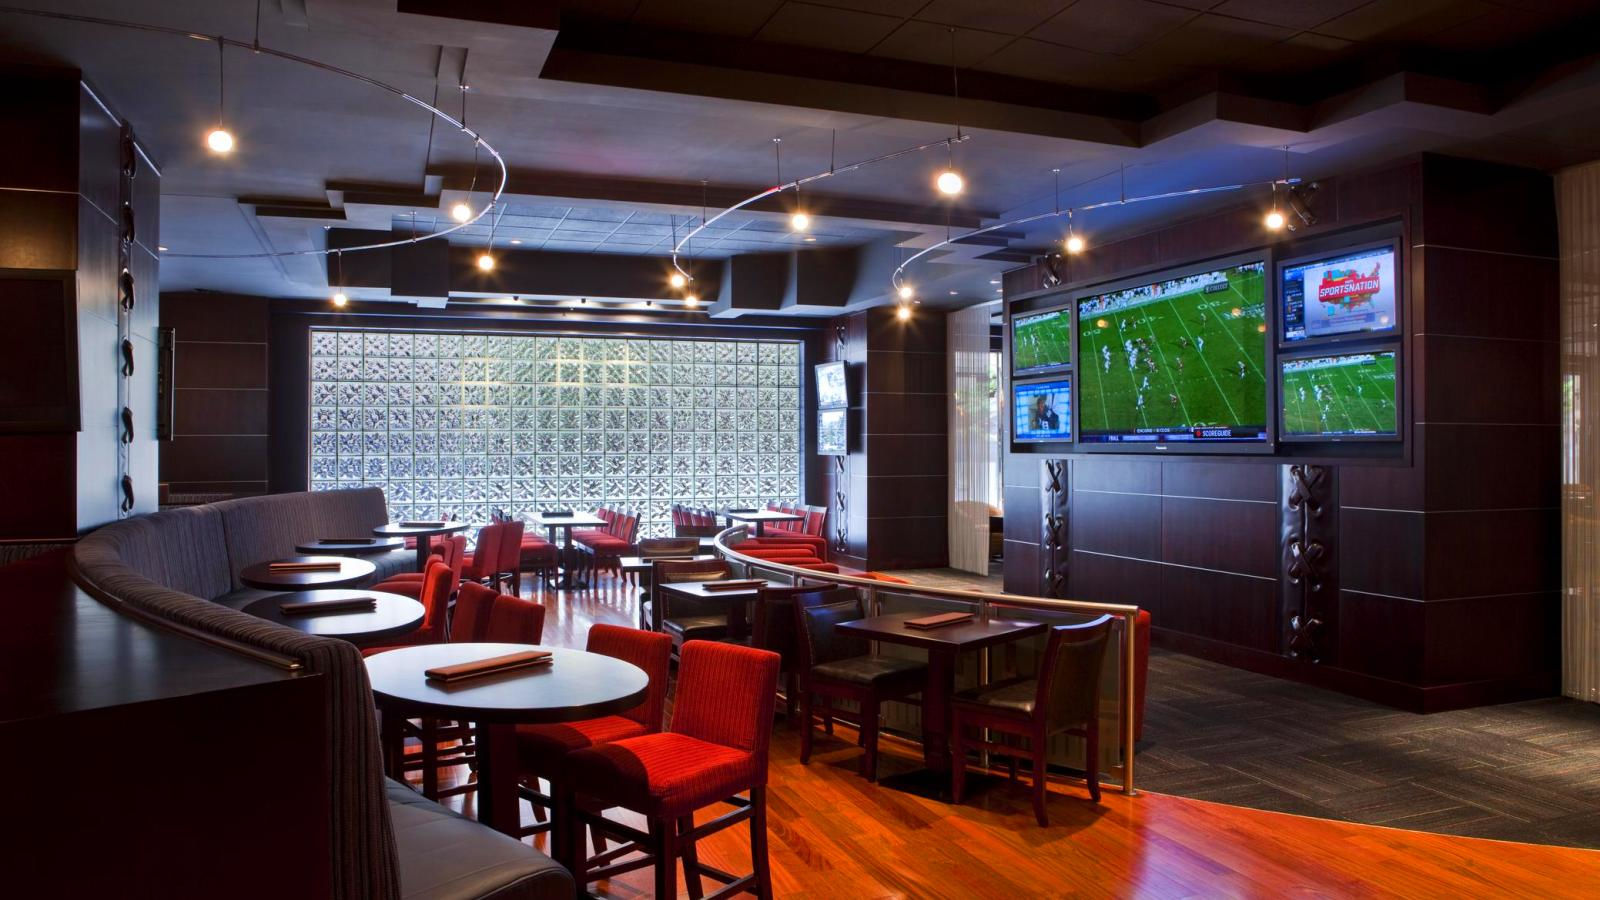 Dallas sports bars draft sports bar lounge best downtown draft sports bar lounge sheraton dallas draft watchthetrailerfo